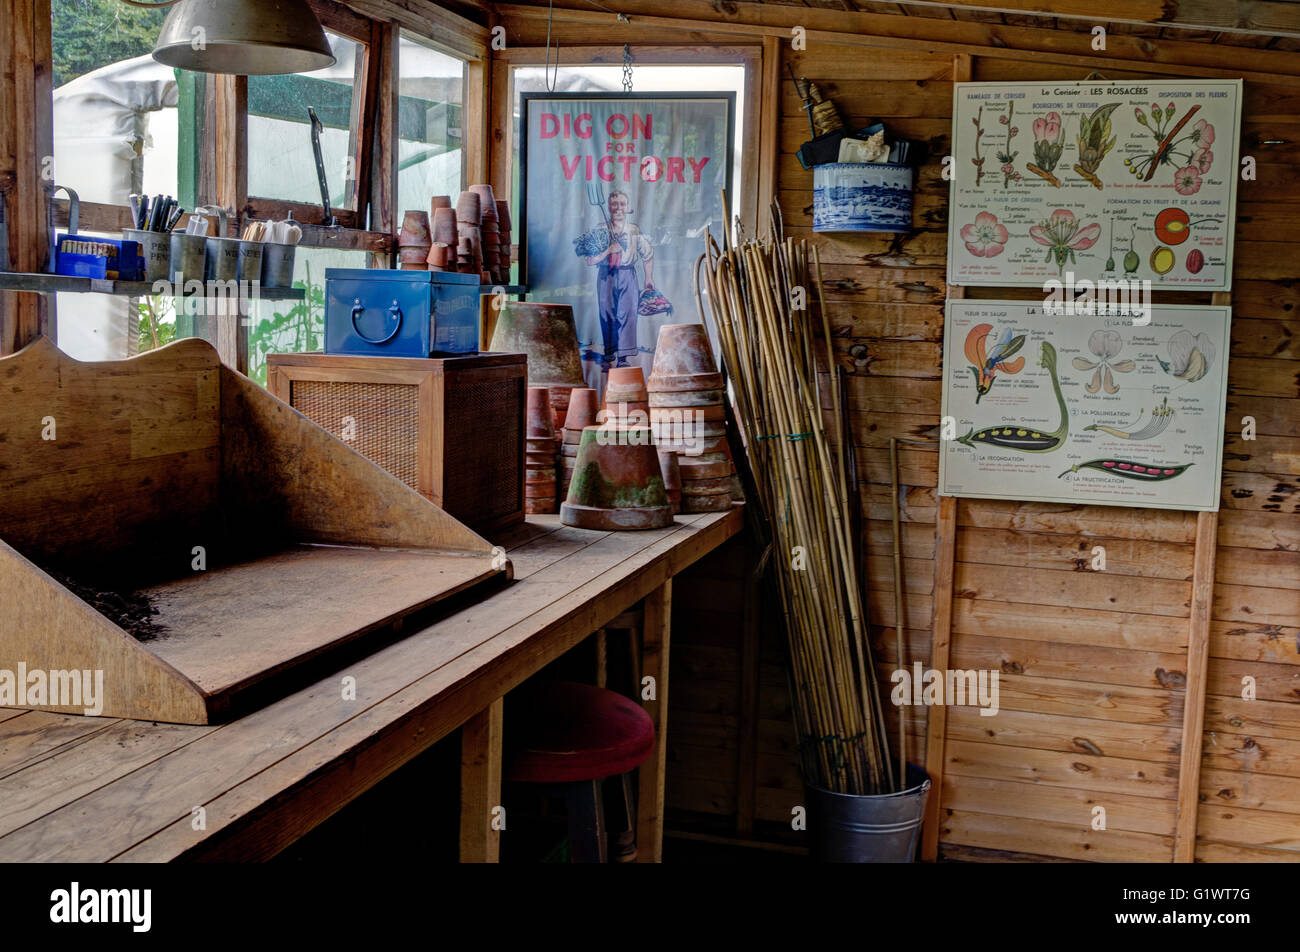 A well-ordered potting shed in the grounds of The Menagerie, Horton, UK - Stock Image